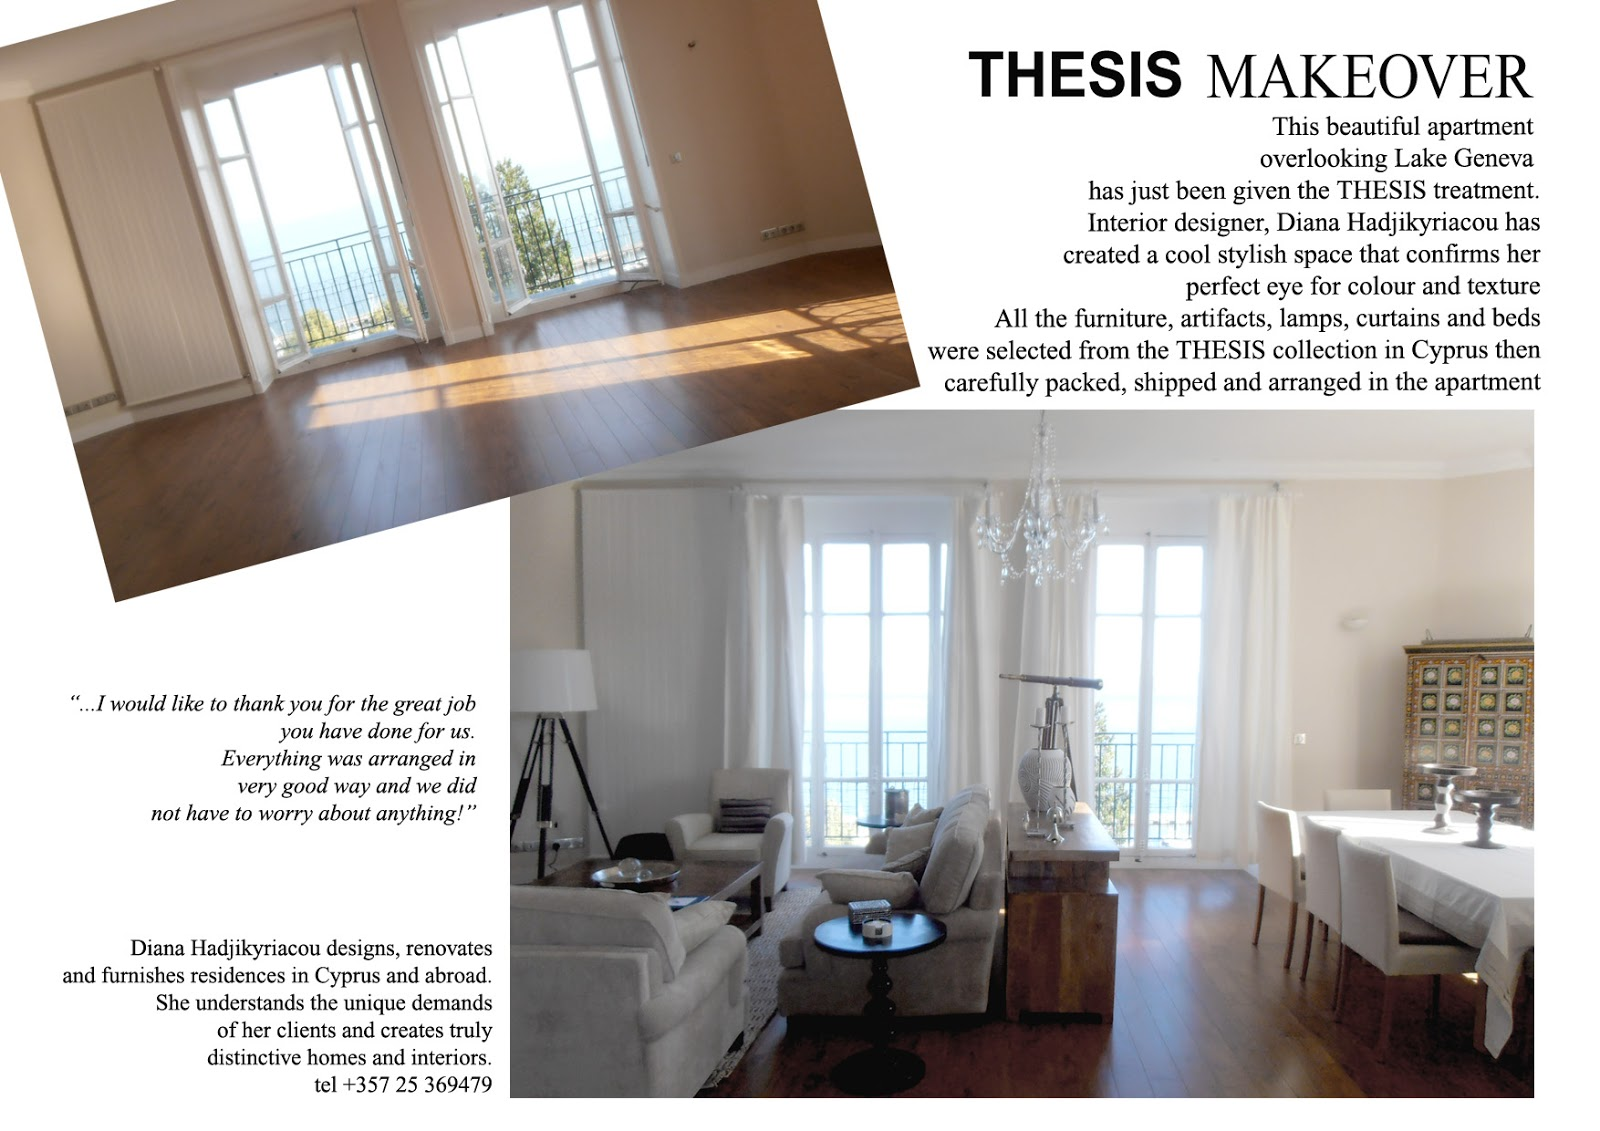 thesis shop limassol Others describe an inherently unfair system that all but thesis cafe limassol requires aspiring writers to attend schools many cannot afford or otherwise access.